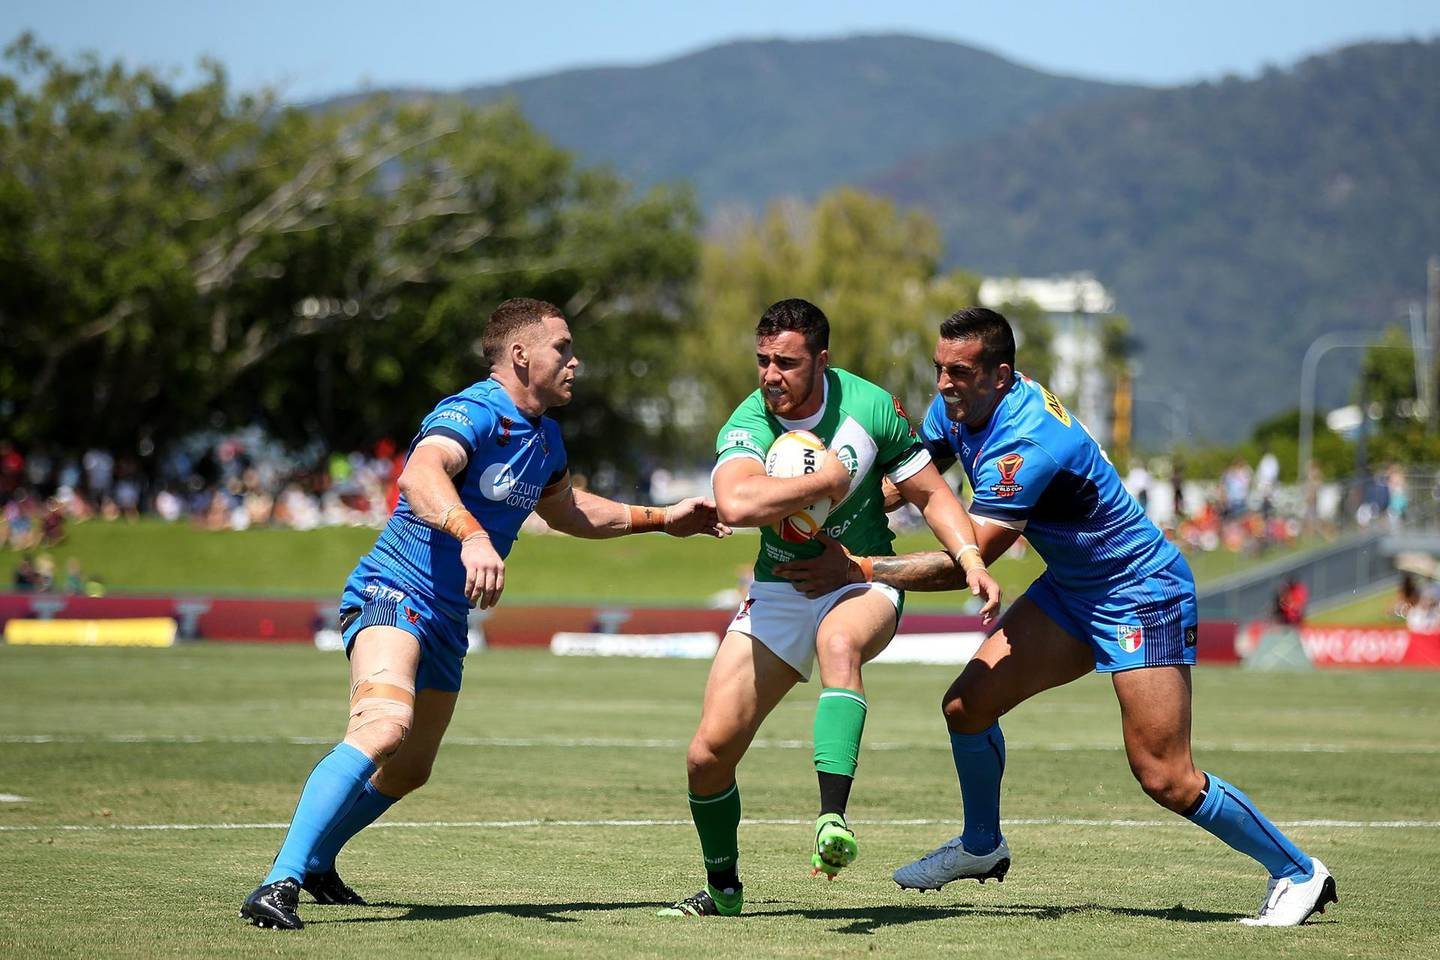 CAIRNS, AUSTRALIA - OCTOBER 29:  Api Pewhairangi of Ireland is tackled during the 2017 Rugby League World Cup match between Ireland and Italy at Barlow Park on October 29, 2017 in Cairns, Australia.  (Photo by Chris Hyde/Getty Images)